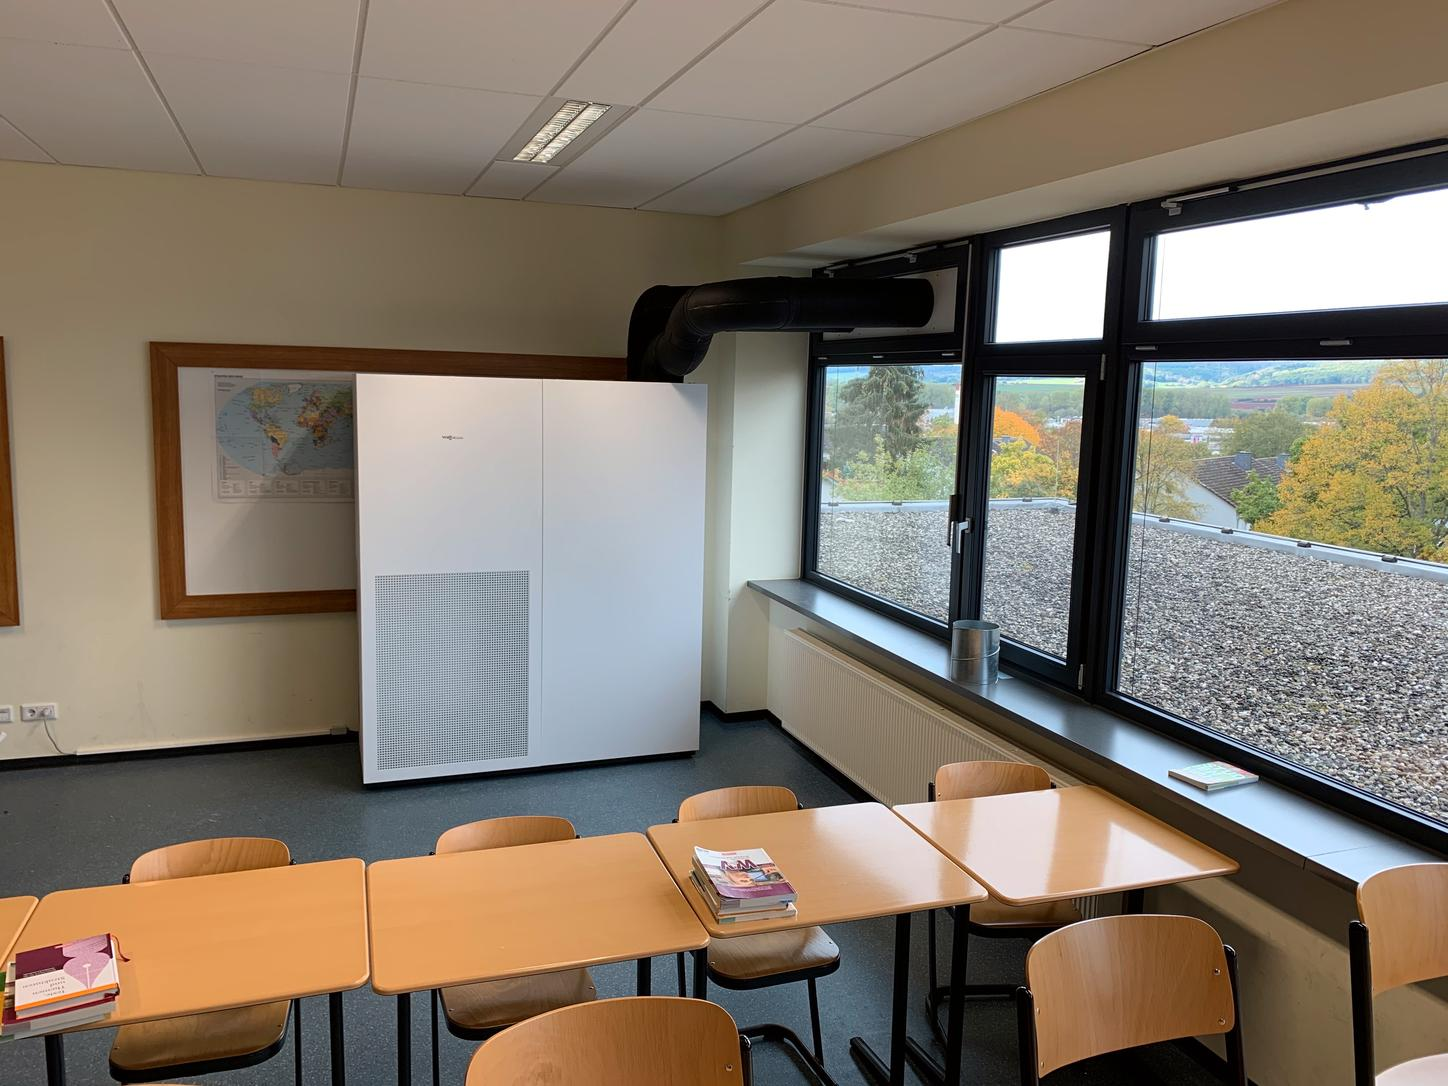 The image shows classroom with Viessmann ventilation unit.